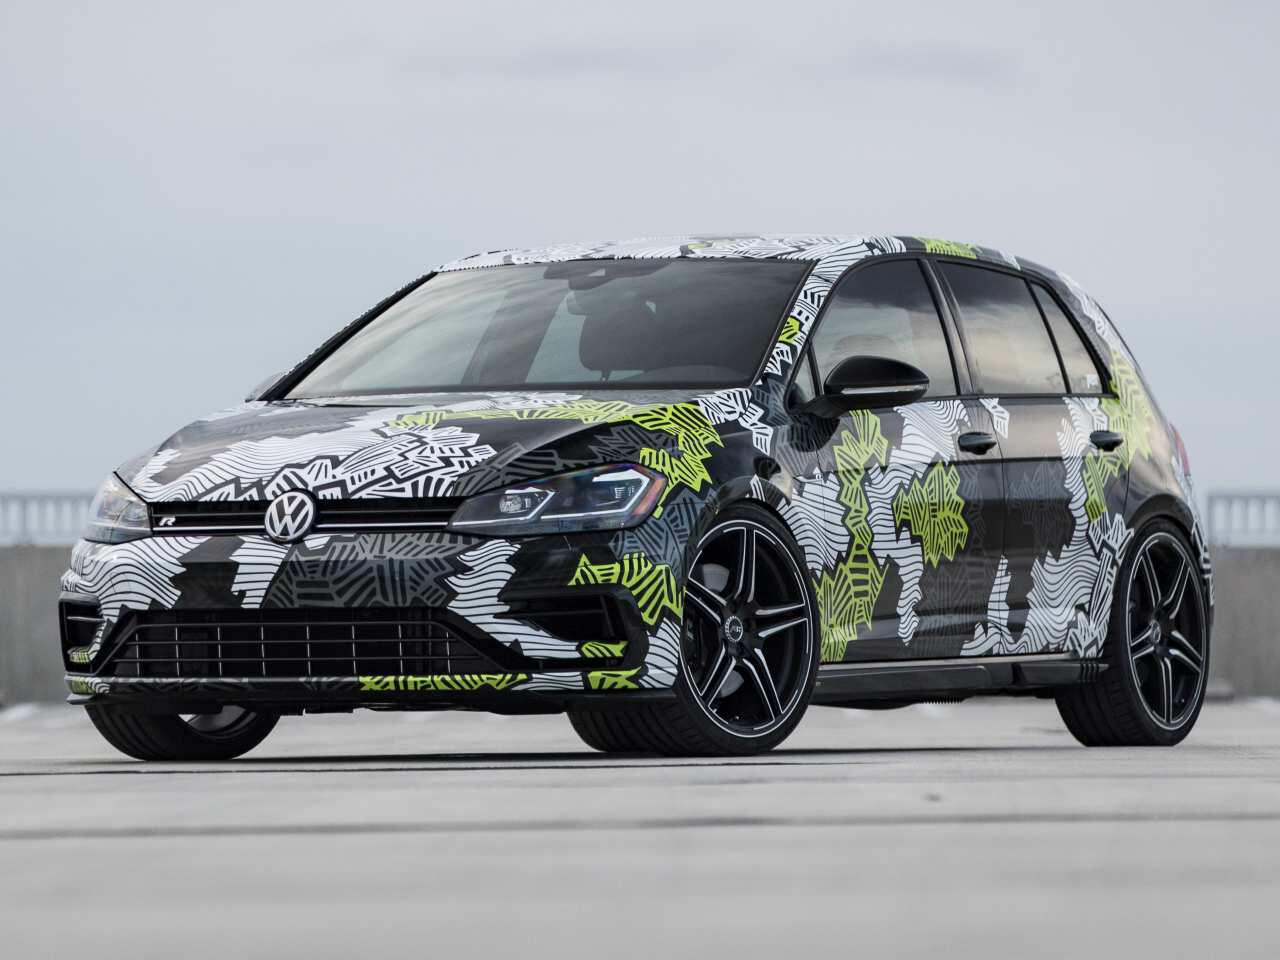 Bild zu Abt Golf R abstract concept